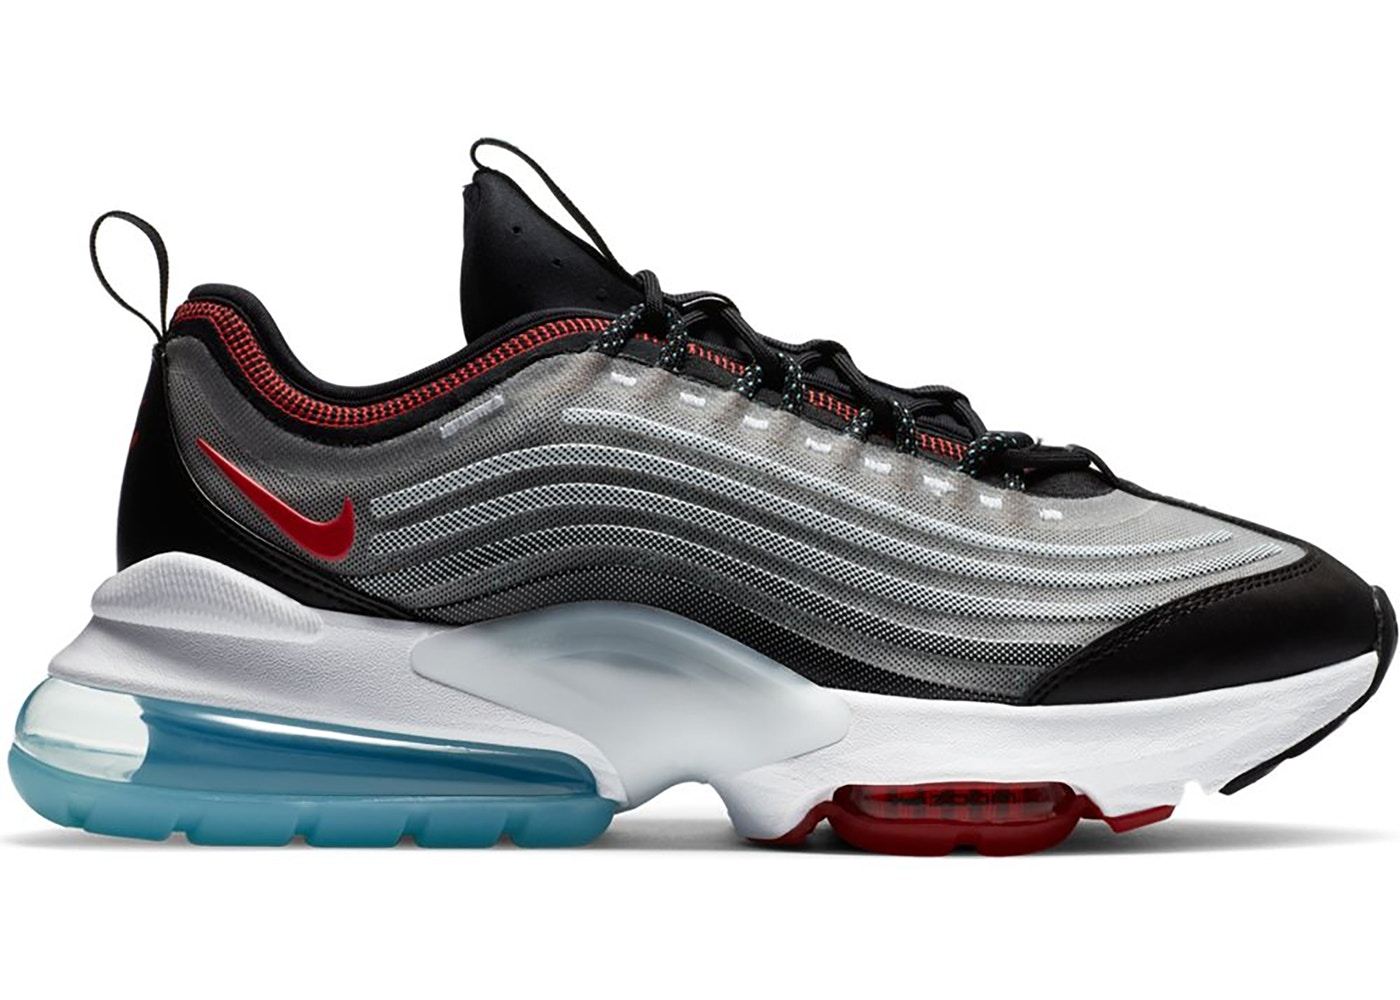 Nike Air Max ZM950 White Black Chile Red